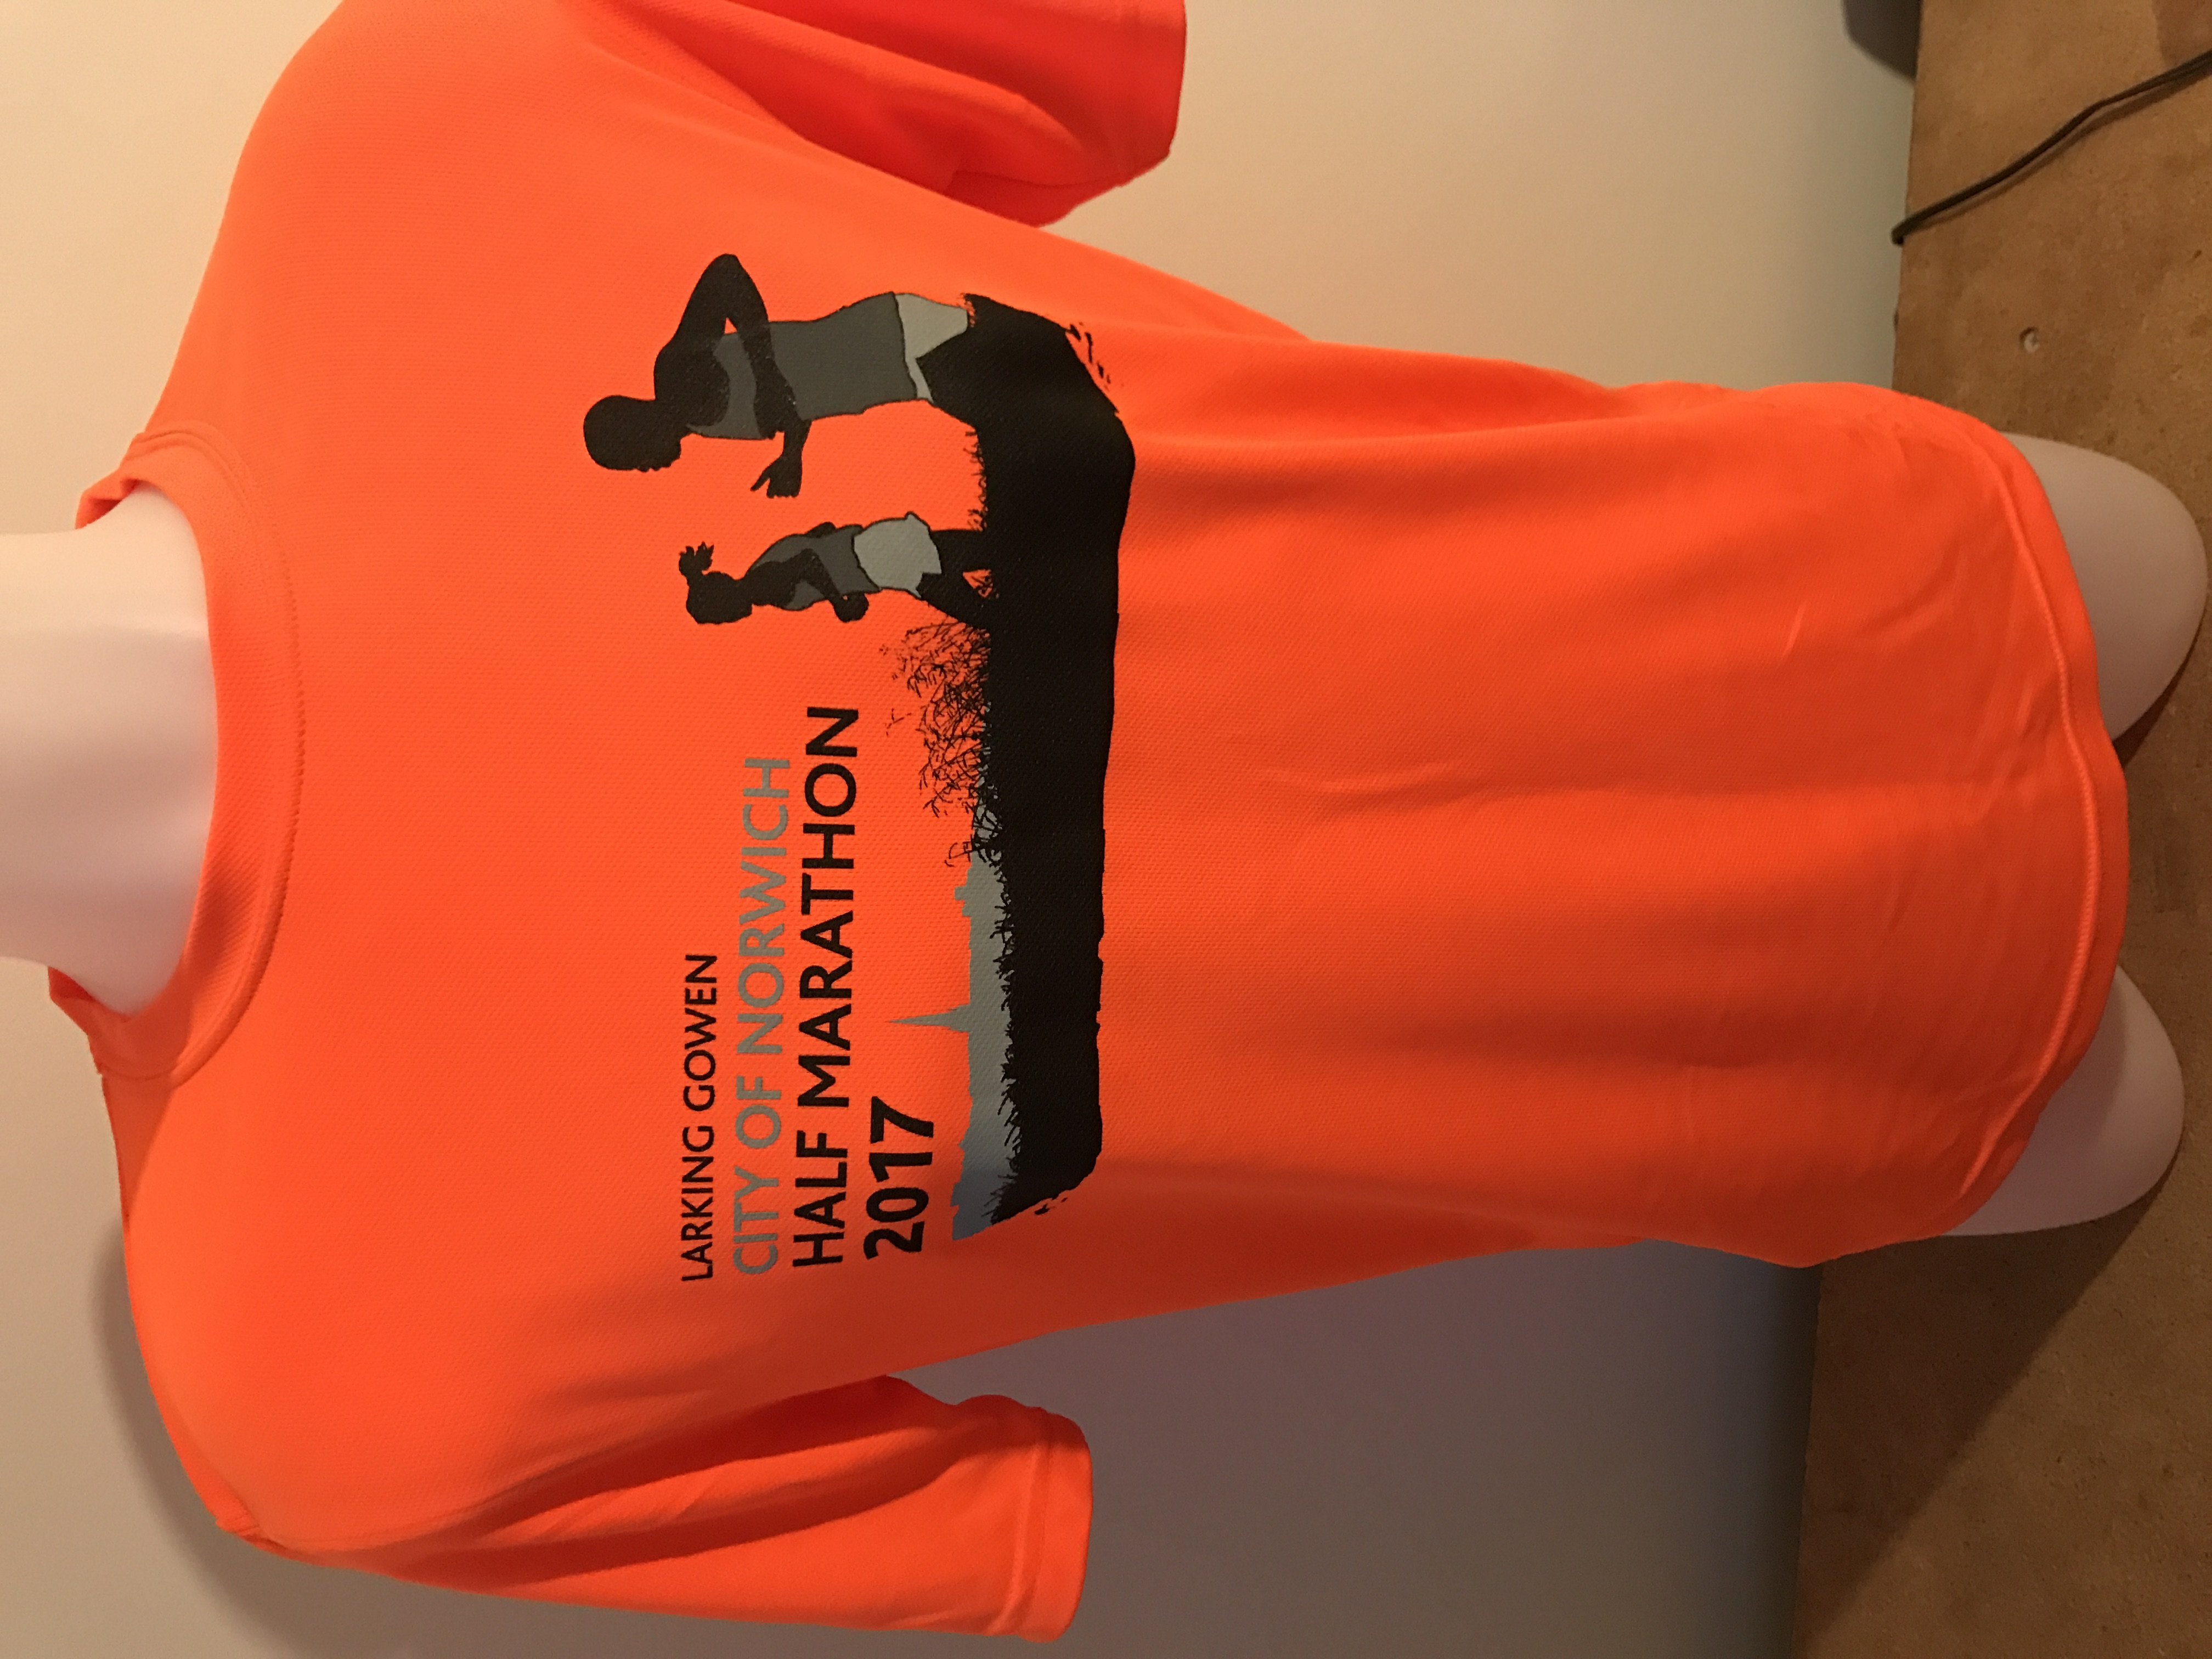 Running Club Print Service Norfolk